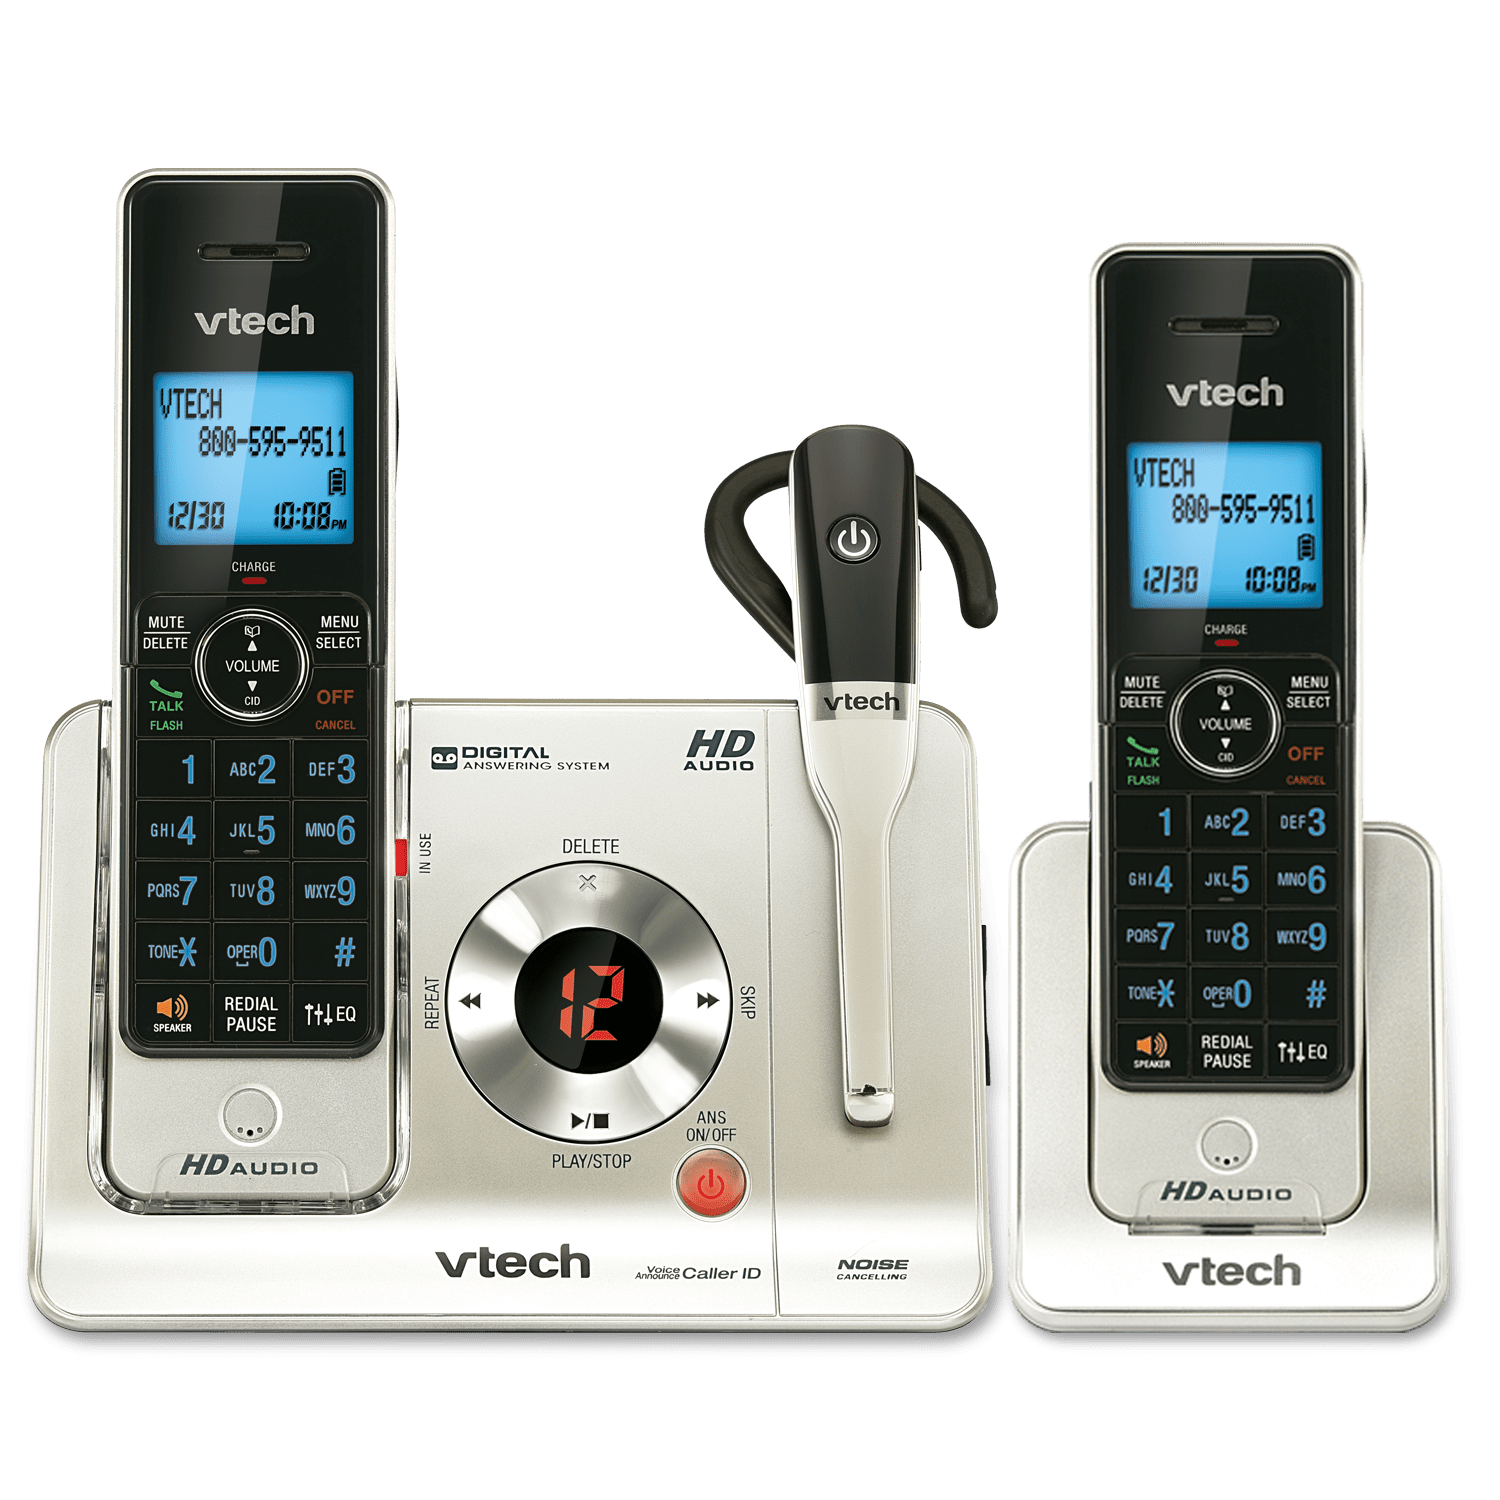 2 Handset Answering System With Cordless Headset Ls6475 3 Vtech Cordless Phones